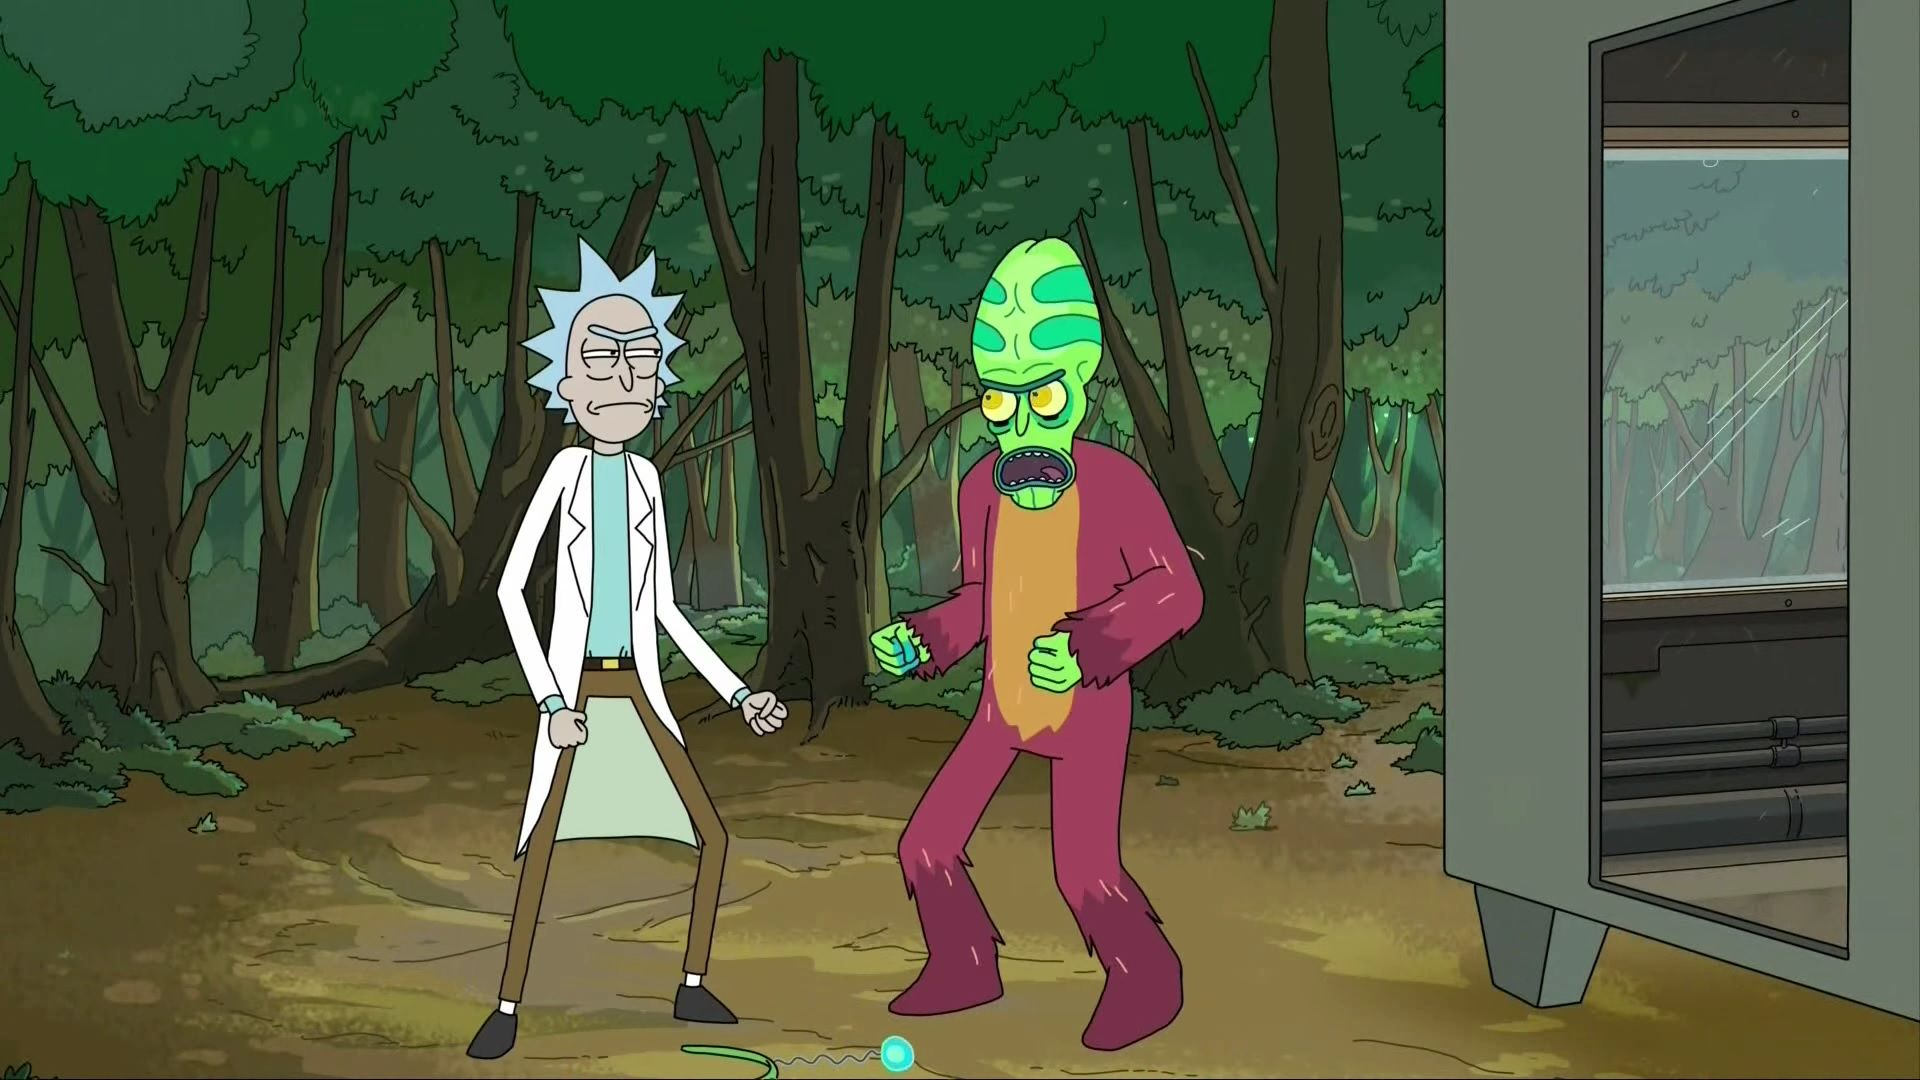 Rick and Morty travel inside the car's battery, where Morty discovers Rick has created a universe containing sentient life solely to produce power for him. Meanwhile, Summer must deal with being locked in the car with Rick's overzealous security system.